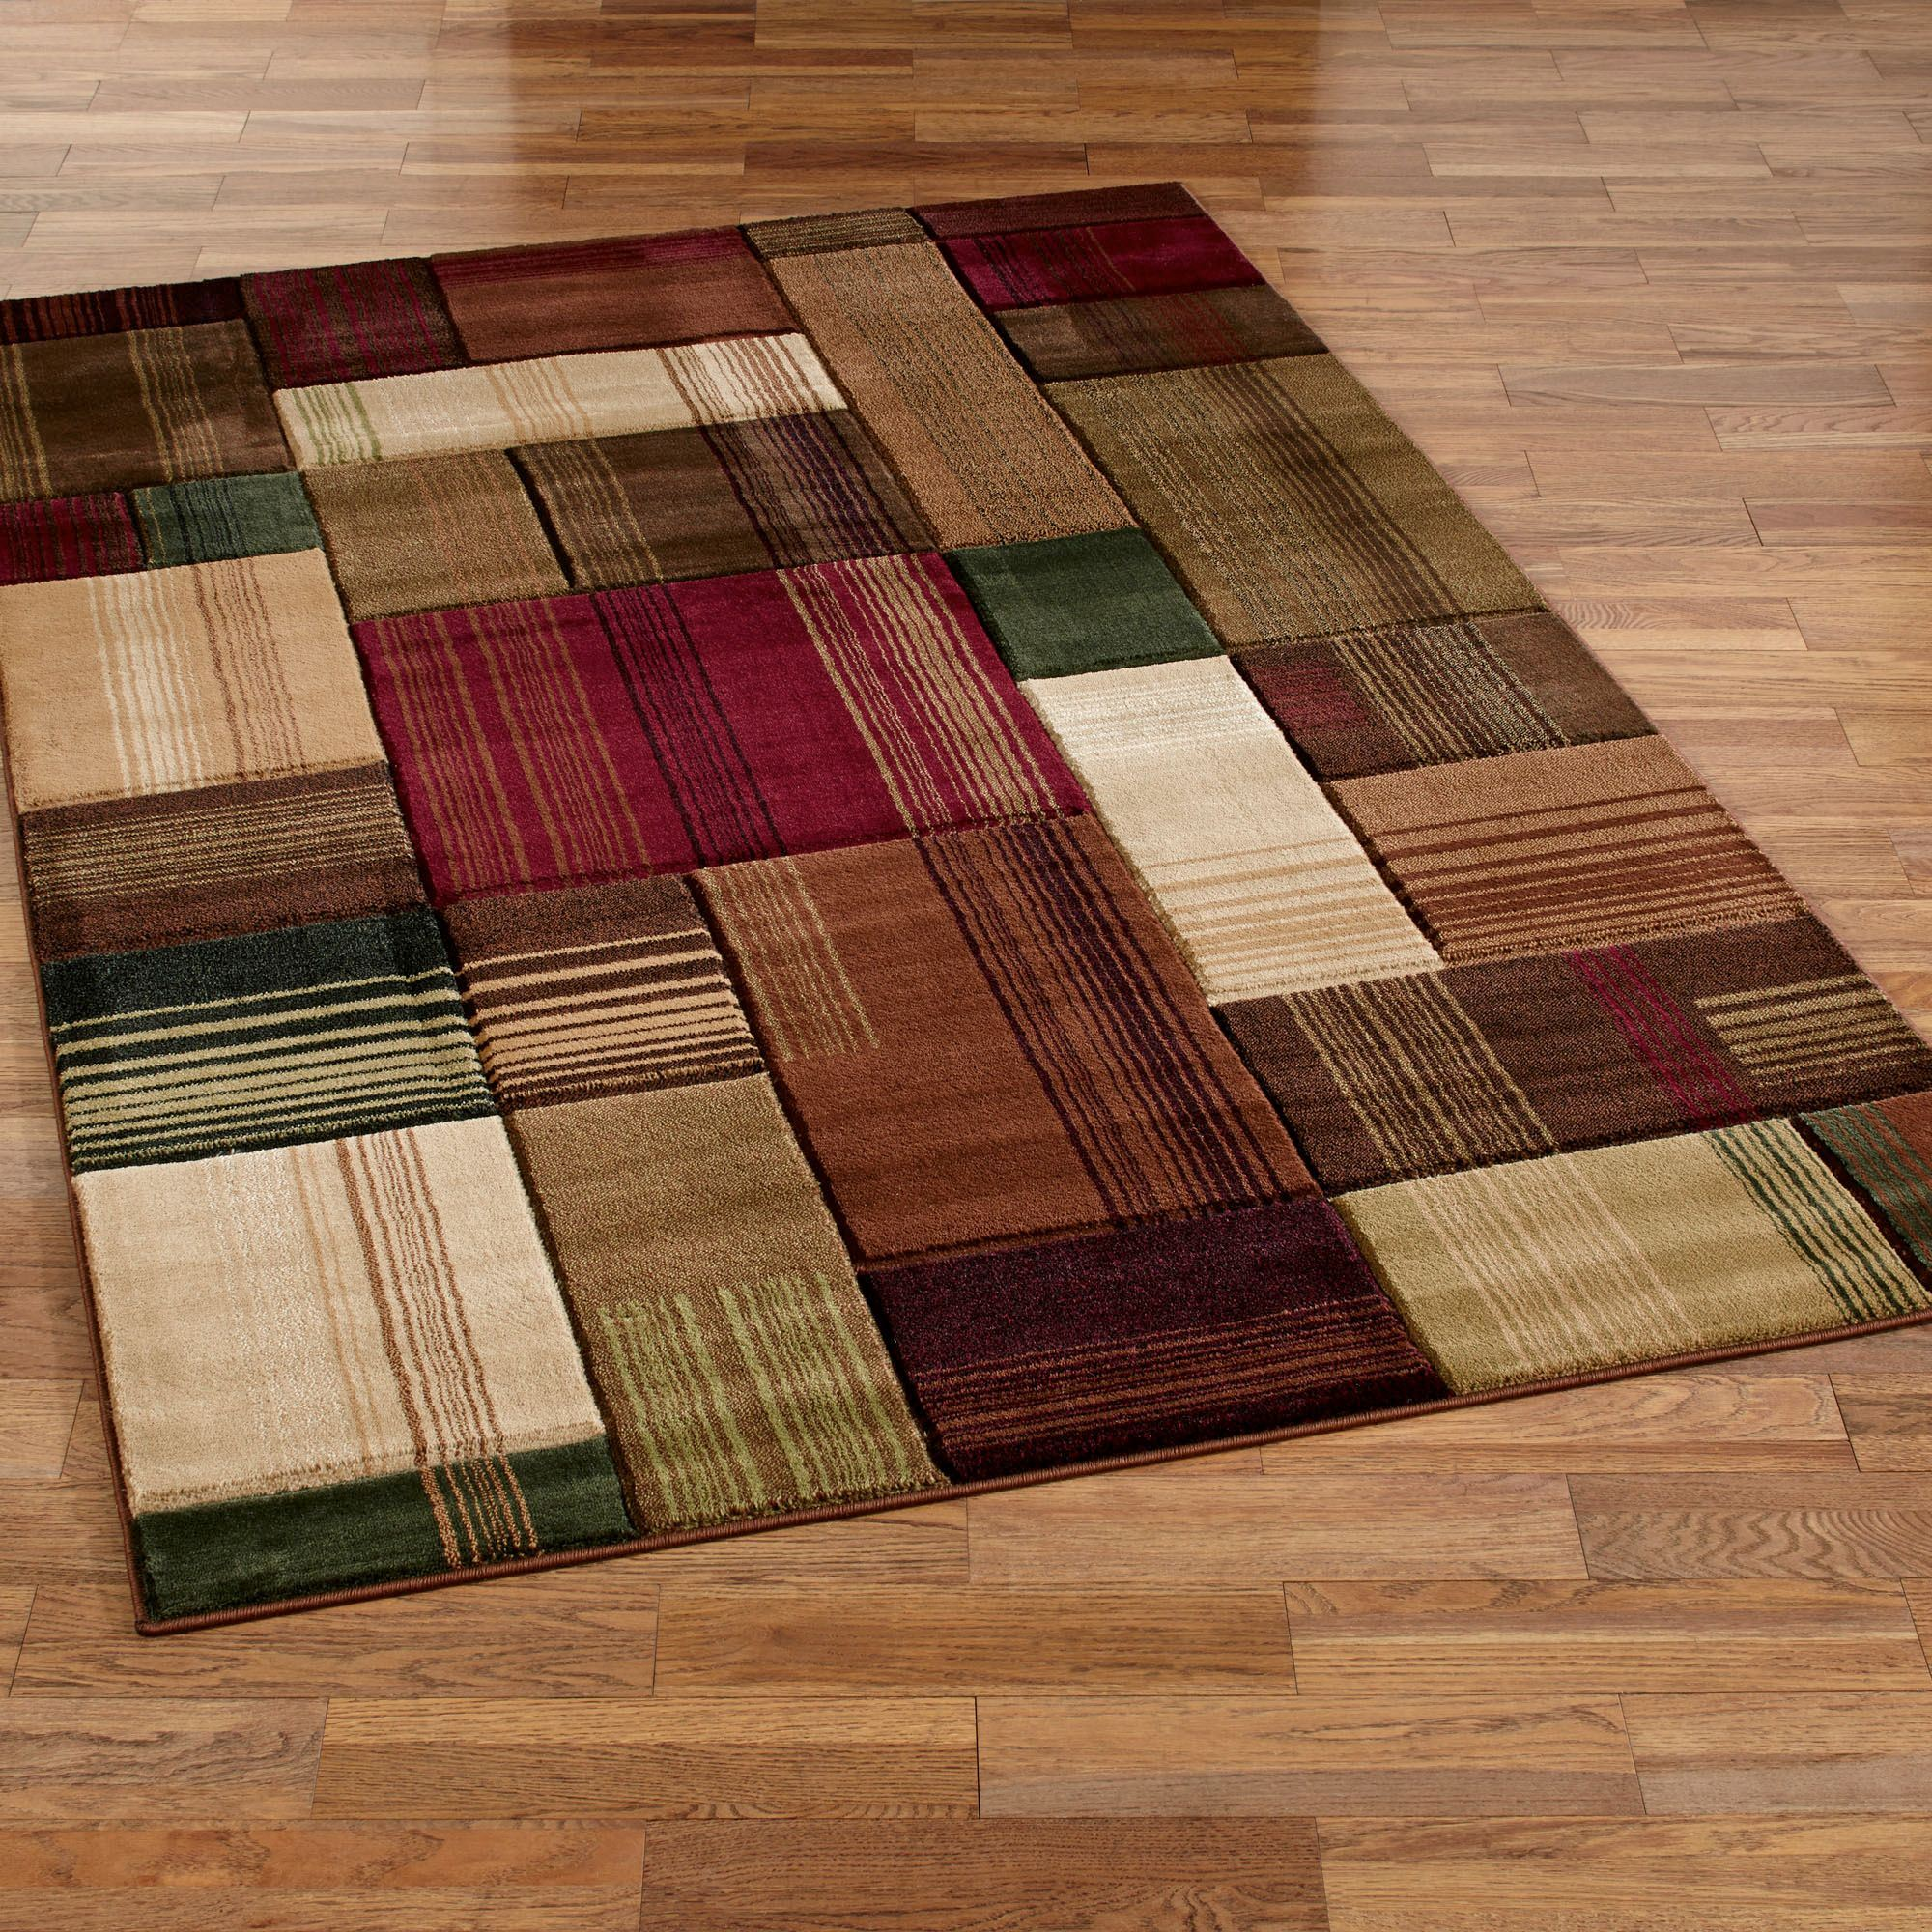 Transitional Block Design Area Rugs